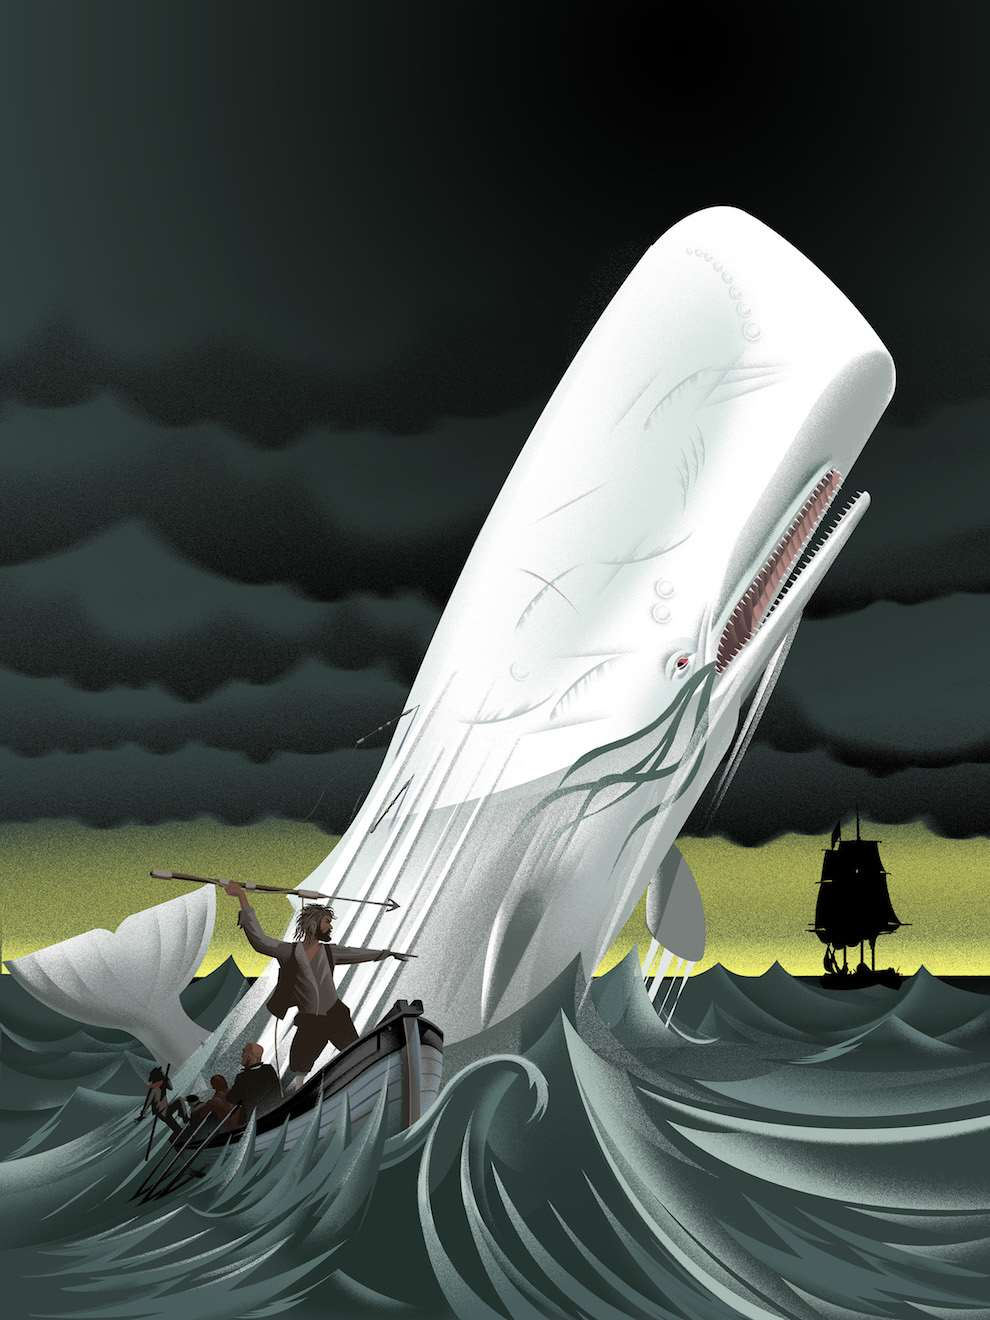 Blue Bateau, Bold and graphic narrative illustration of Moby Dick hunt